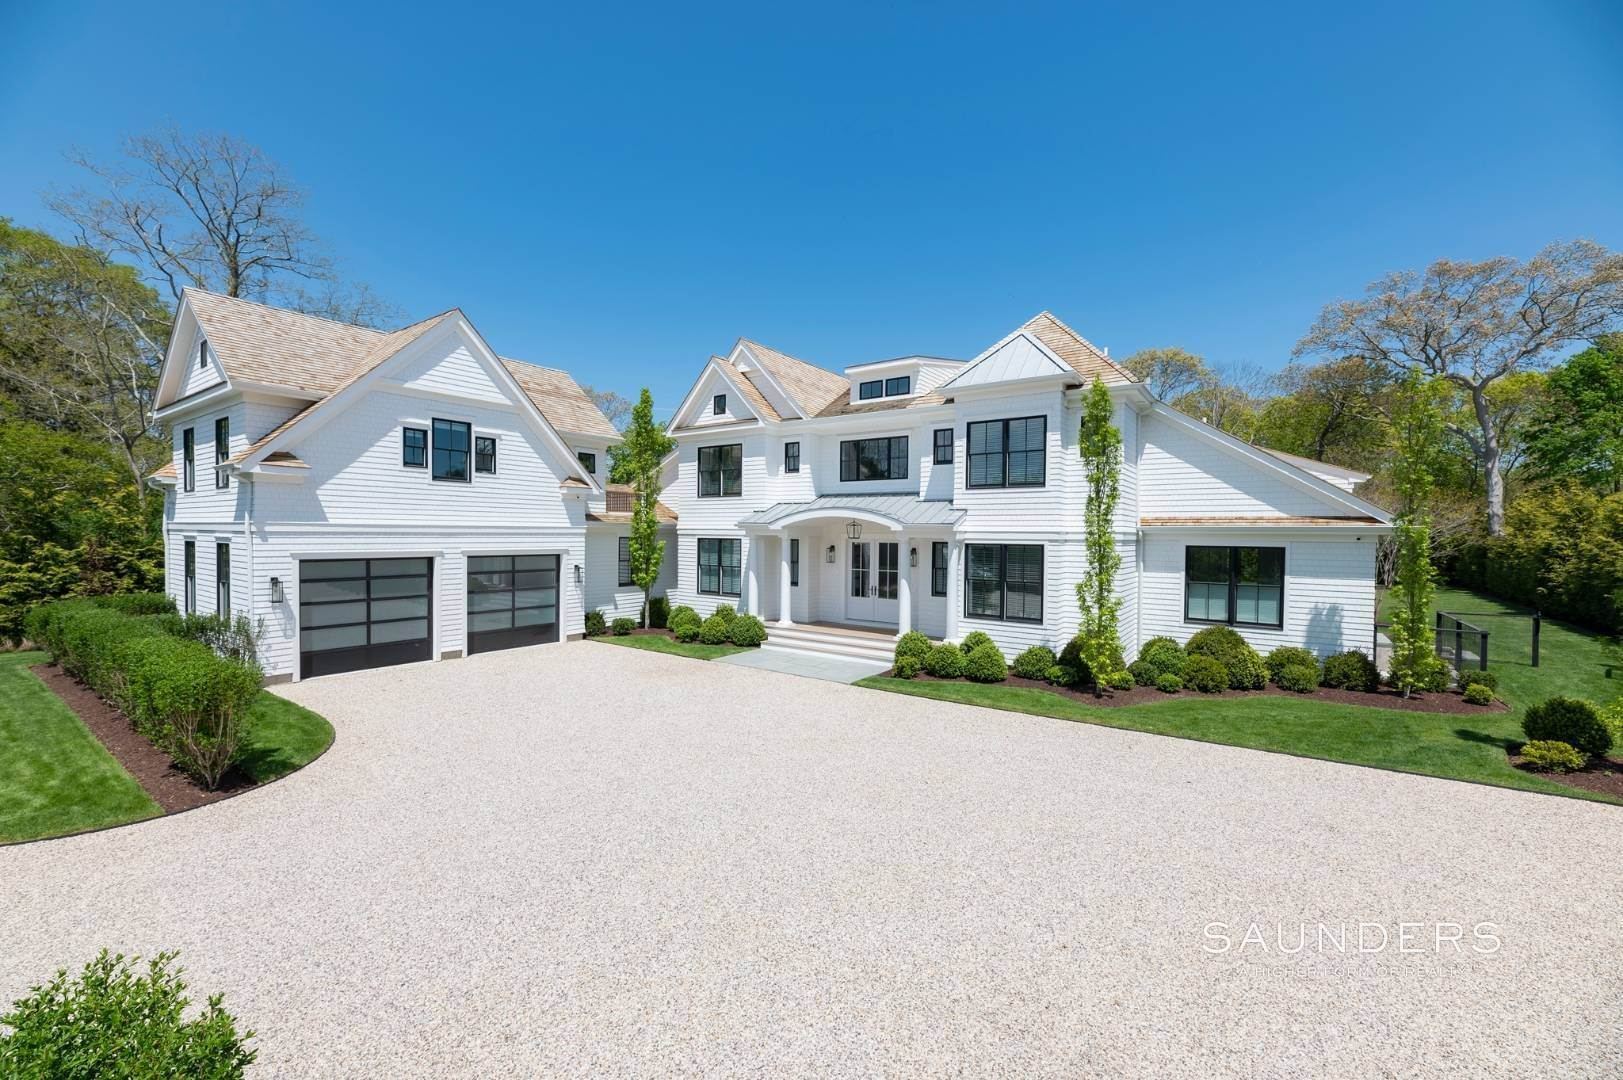 Single Family Homes for Sale at New Construction In The Village 250 Mill Road, Westhampton Beach Village, Southampton Town, NY 11978